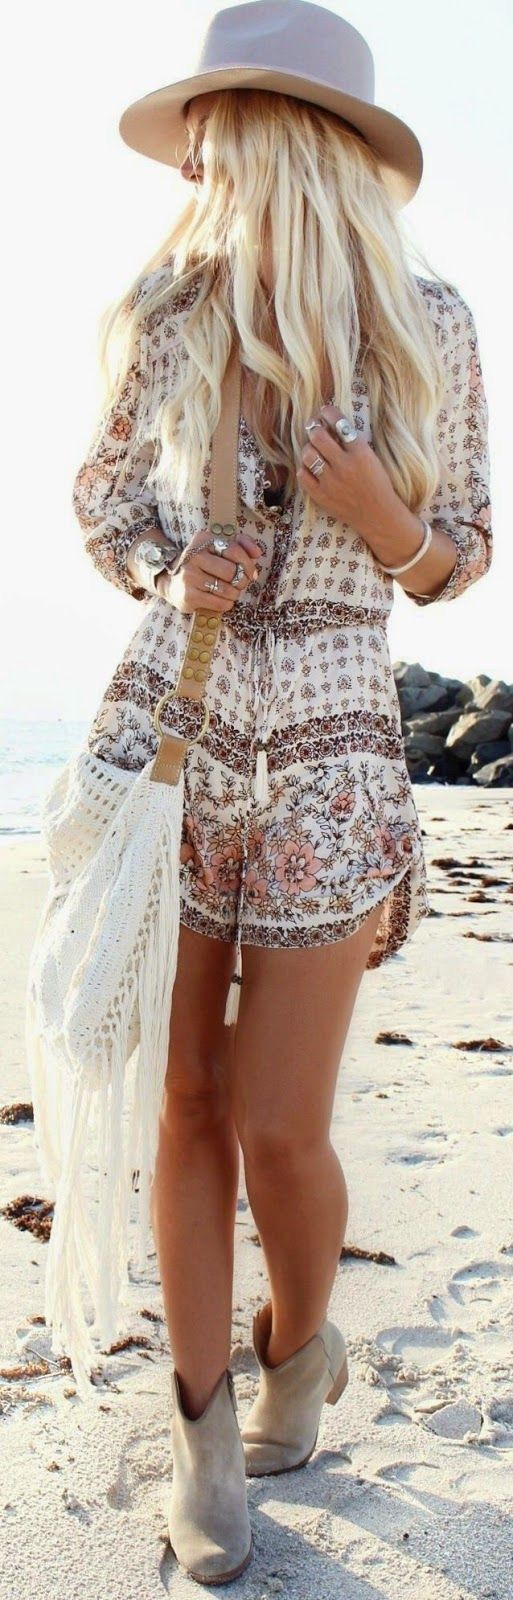 **** STITCH FIX May 2017 styles!  Boho chic all the way!! Love this adorable romper with nude bootie and crochet crossbody!! Epitome of 70's chic!  Get styles just like these from Stitch Fix today. Just click the picture to get started!!  Stitch Fix Spring Summer 2017. #Affiliate #StitchFix